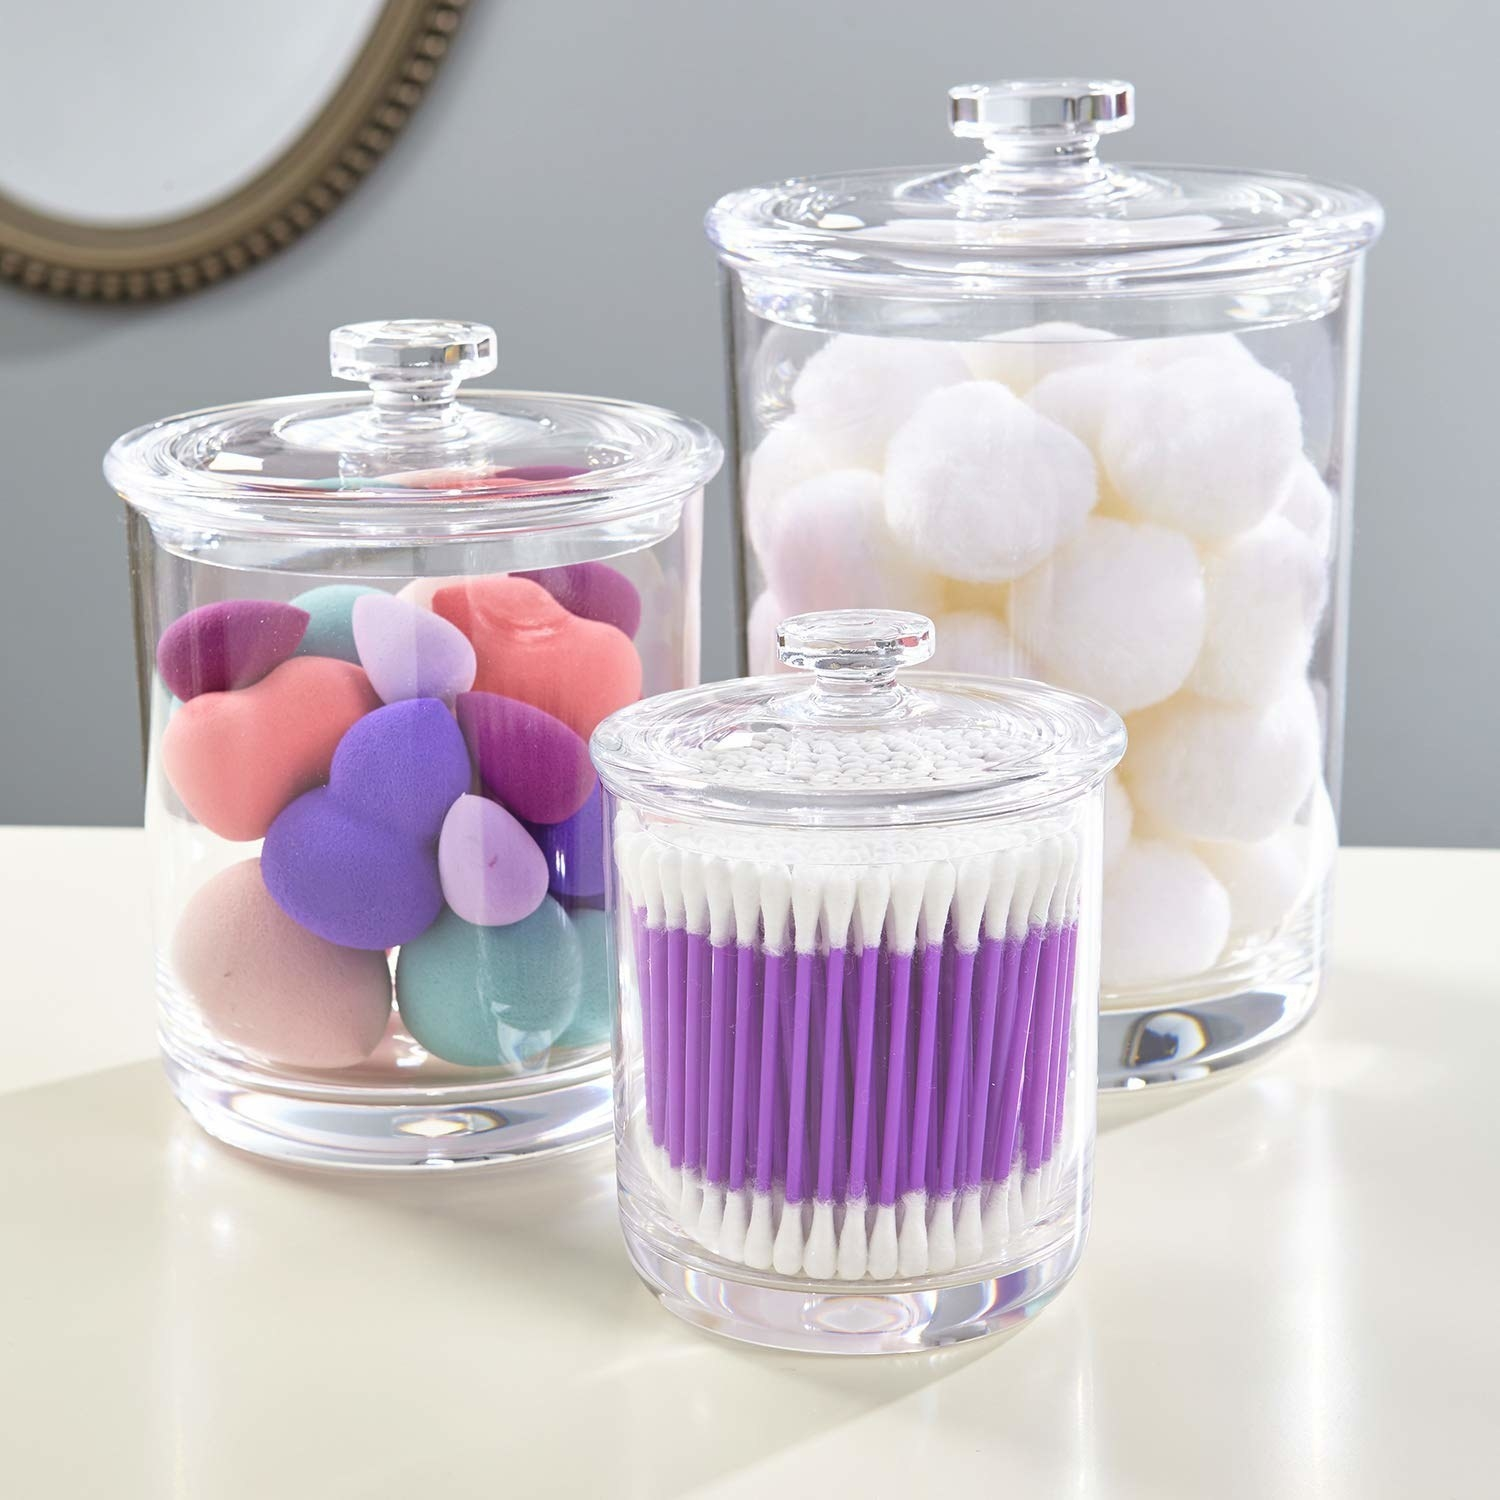 three glass canisters in different sizes holding various beauty products